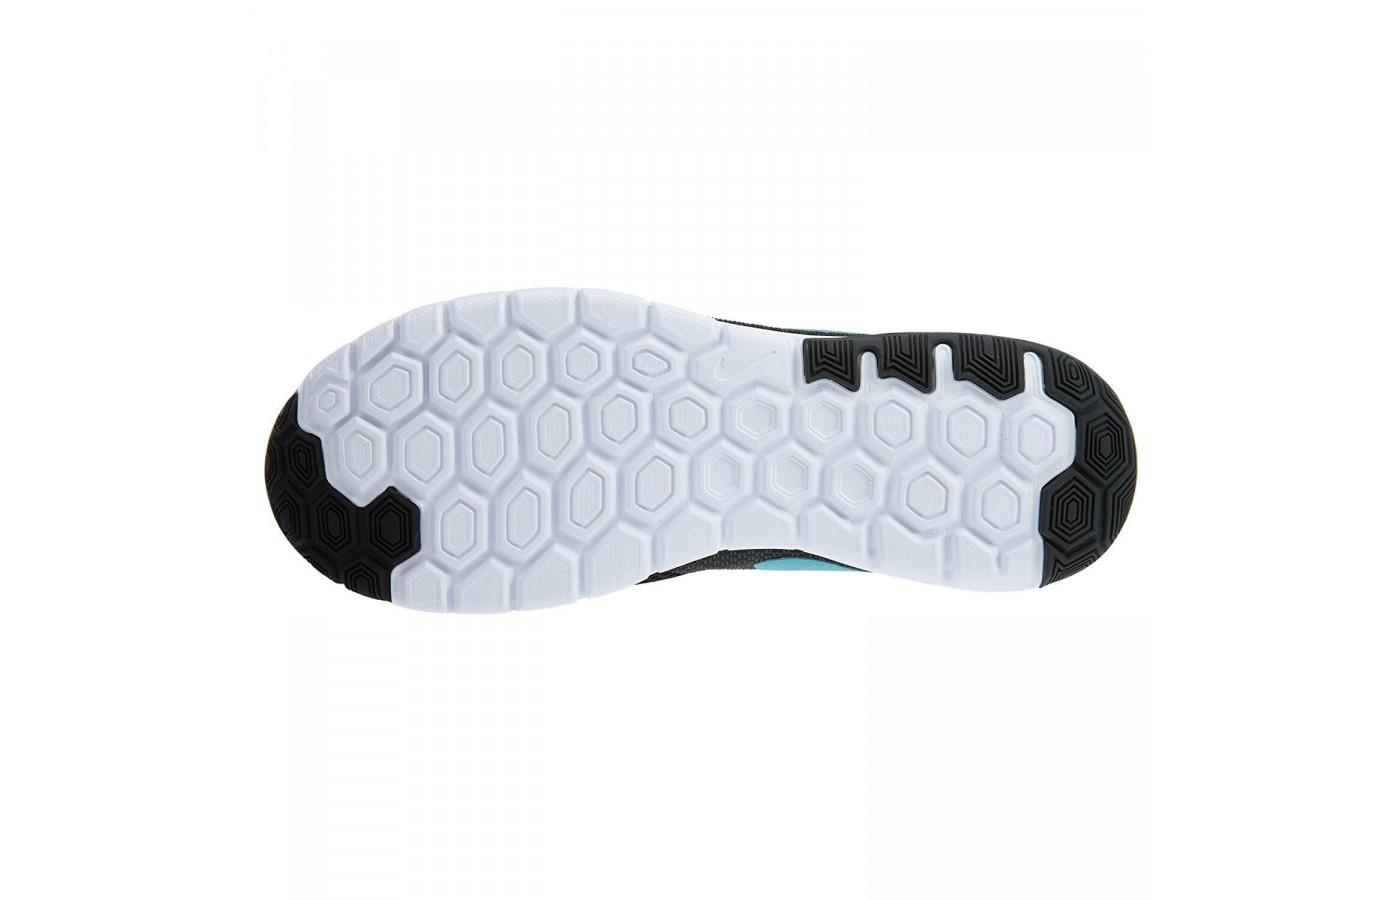 The outsole of the Nike Flex Experience RN 6 is durable and the hexagonal lugs provide a natural ride